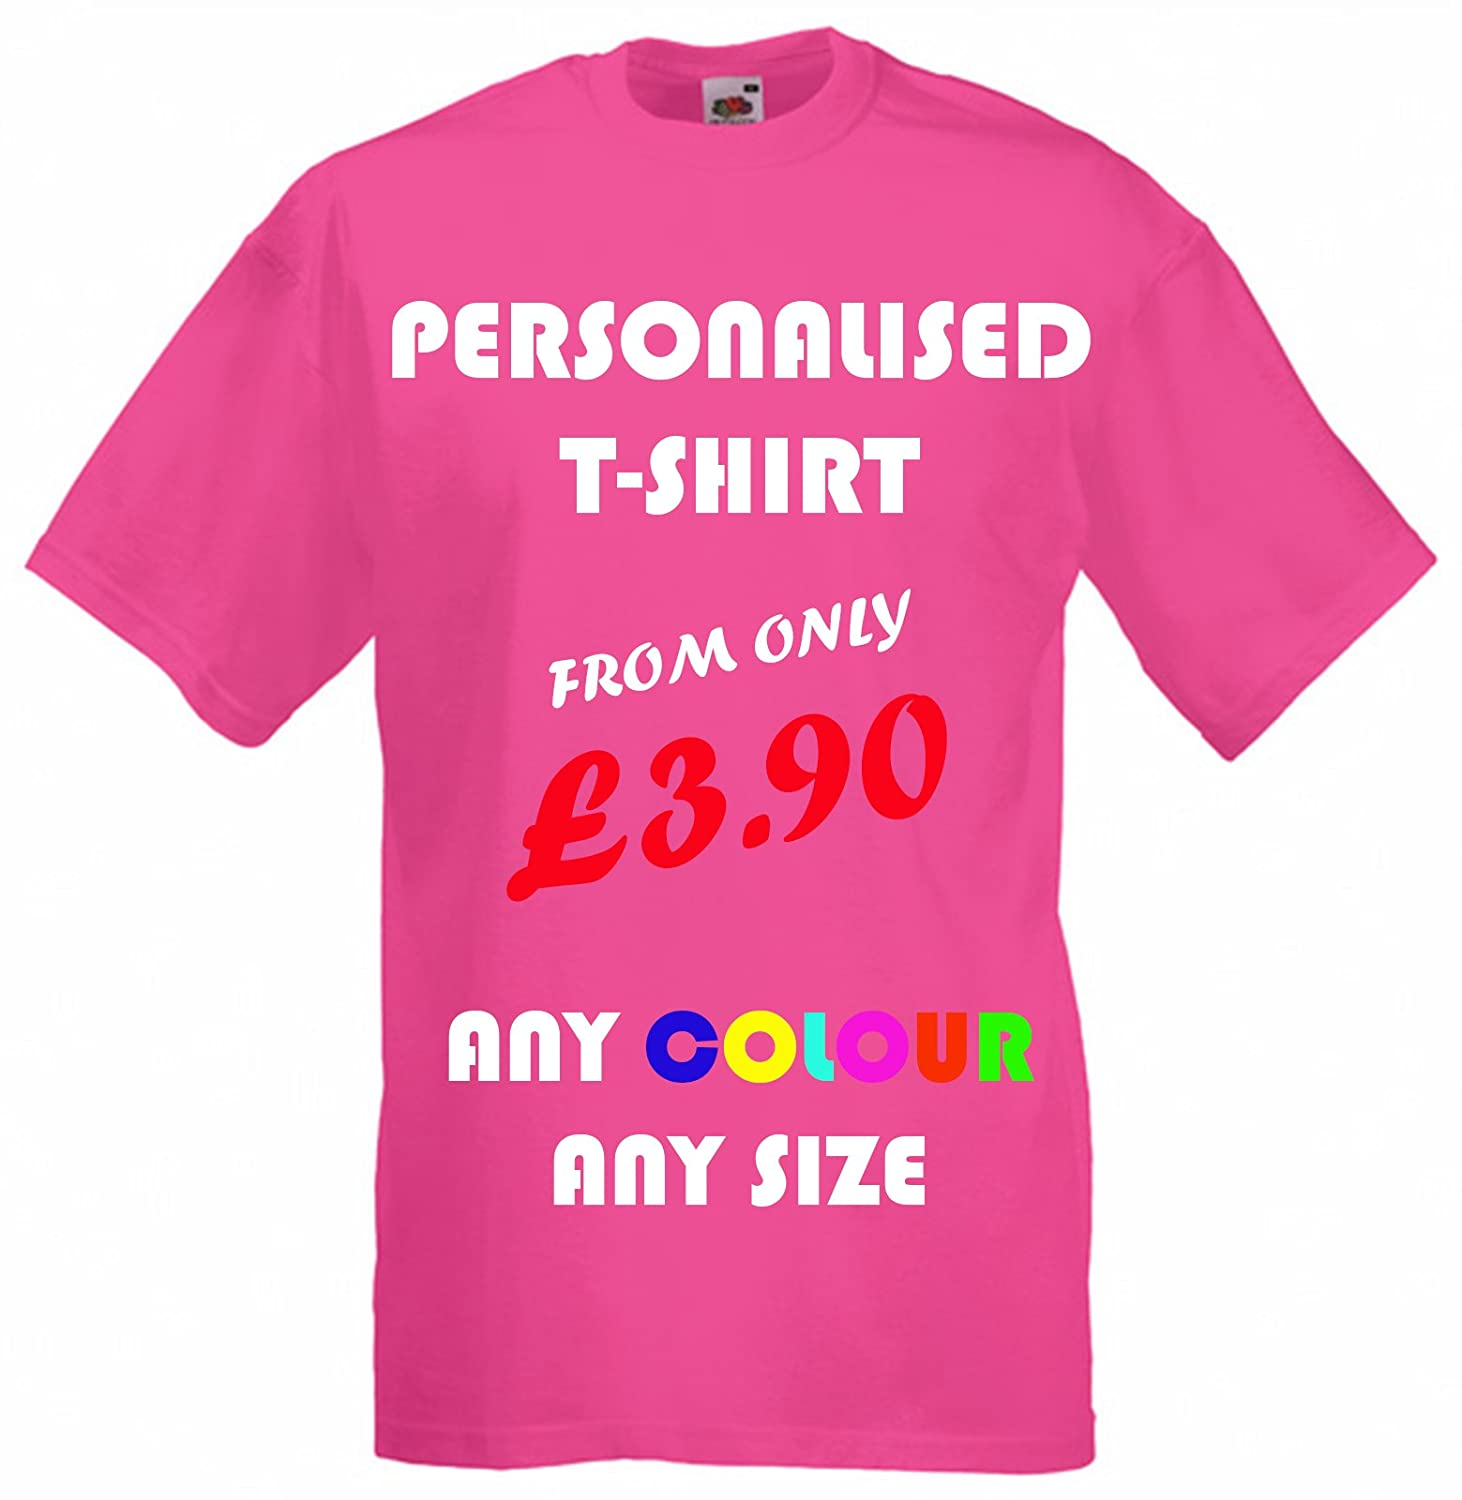 1bc6aa65 Custom Printed T-shirts (FRONT & BACK), Personalised By You! Great Gift!:  Amazon.co.uk: Clothing